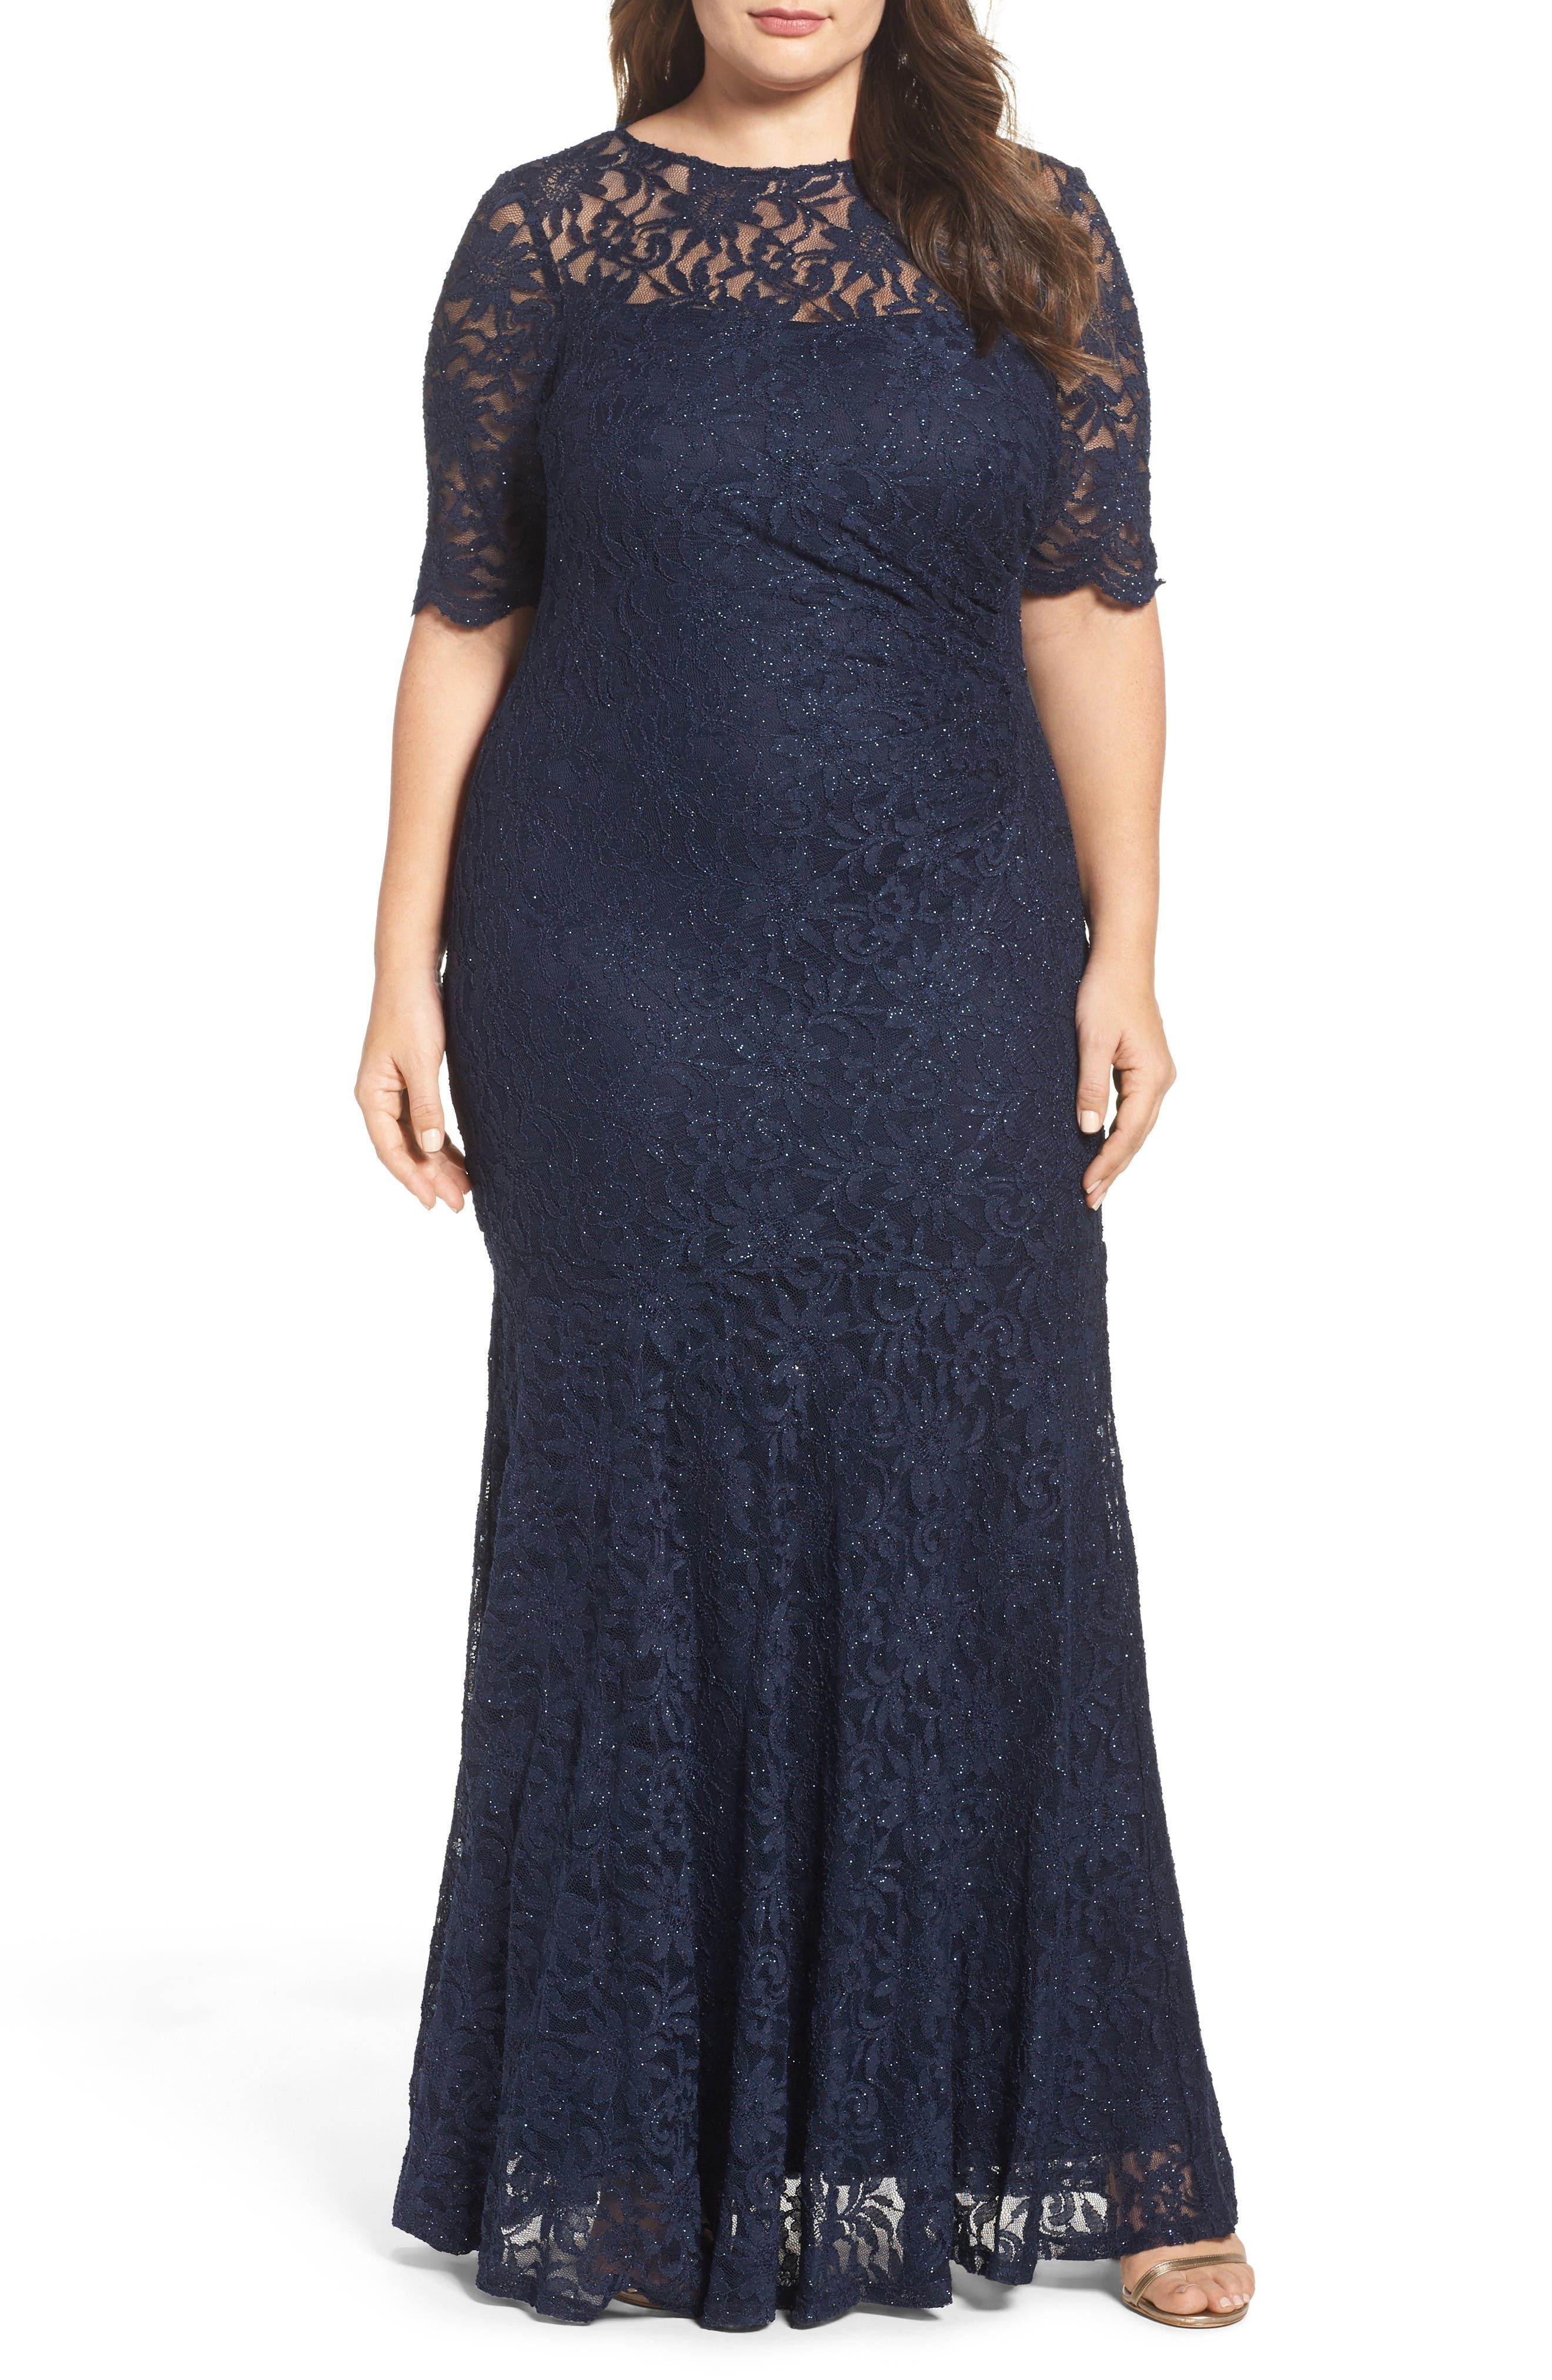 Decode 1.8 A-Line Stretch Lace Gown (Plus Size)